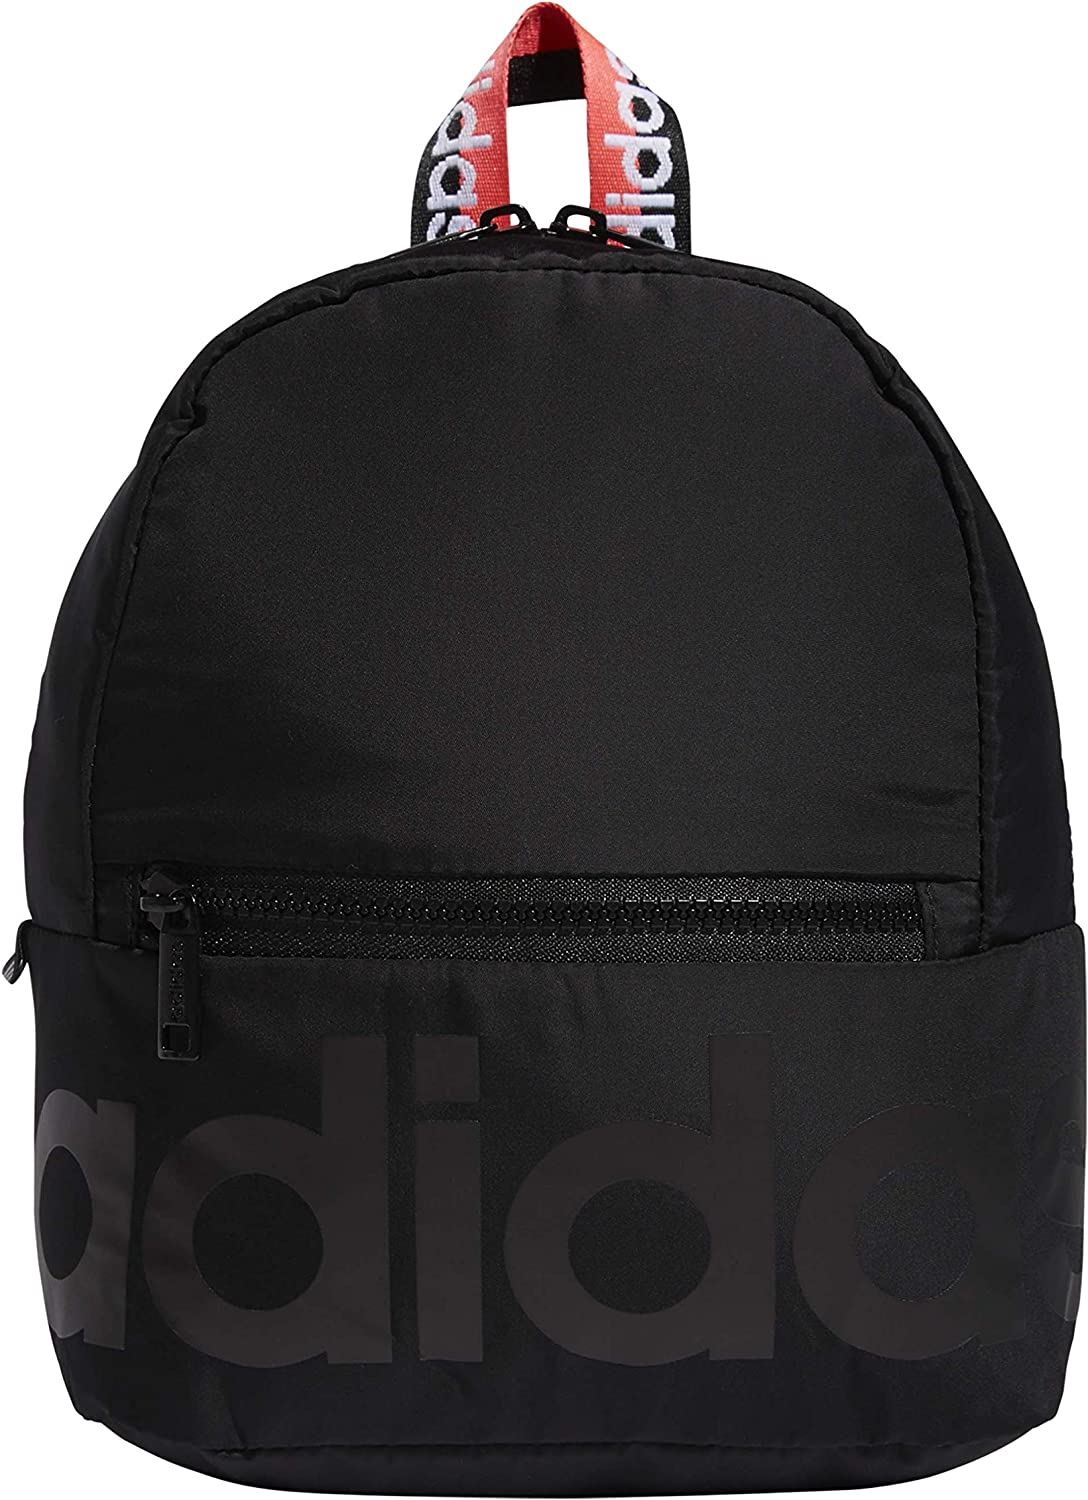 adidas Linear Mini Backpack Black/Signal Pink/White, one size